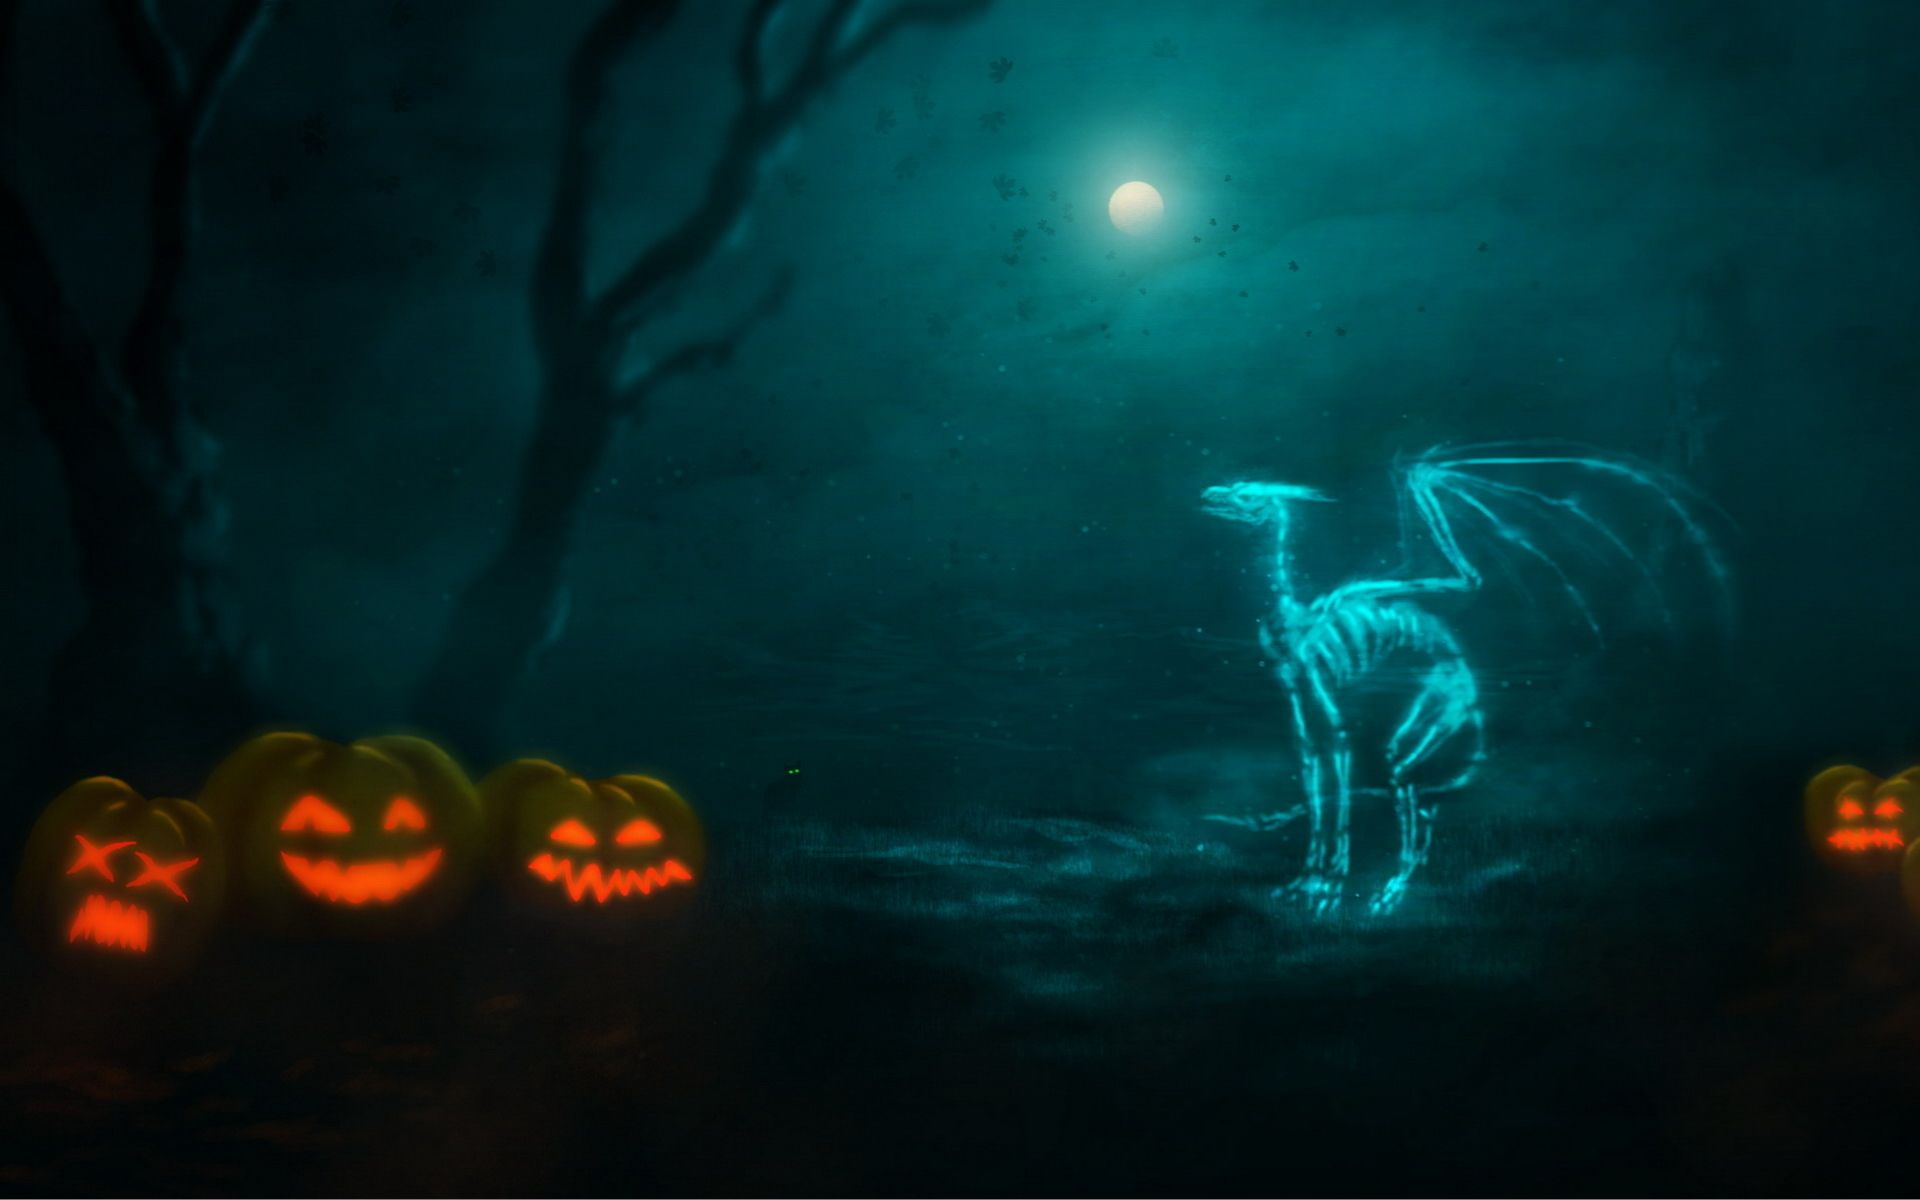 Ghost dragon Ghost images, Halloween wallpaper, Scary